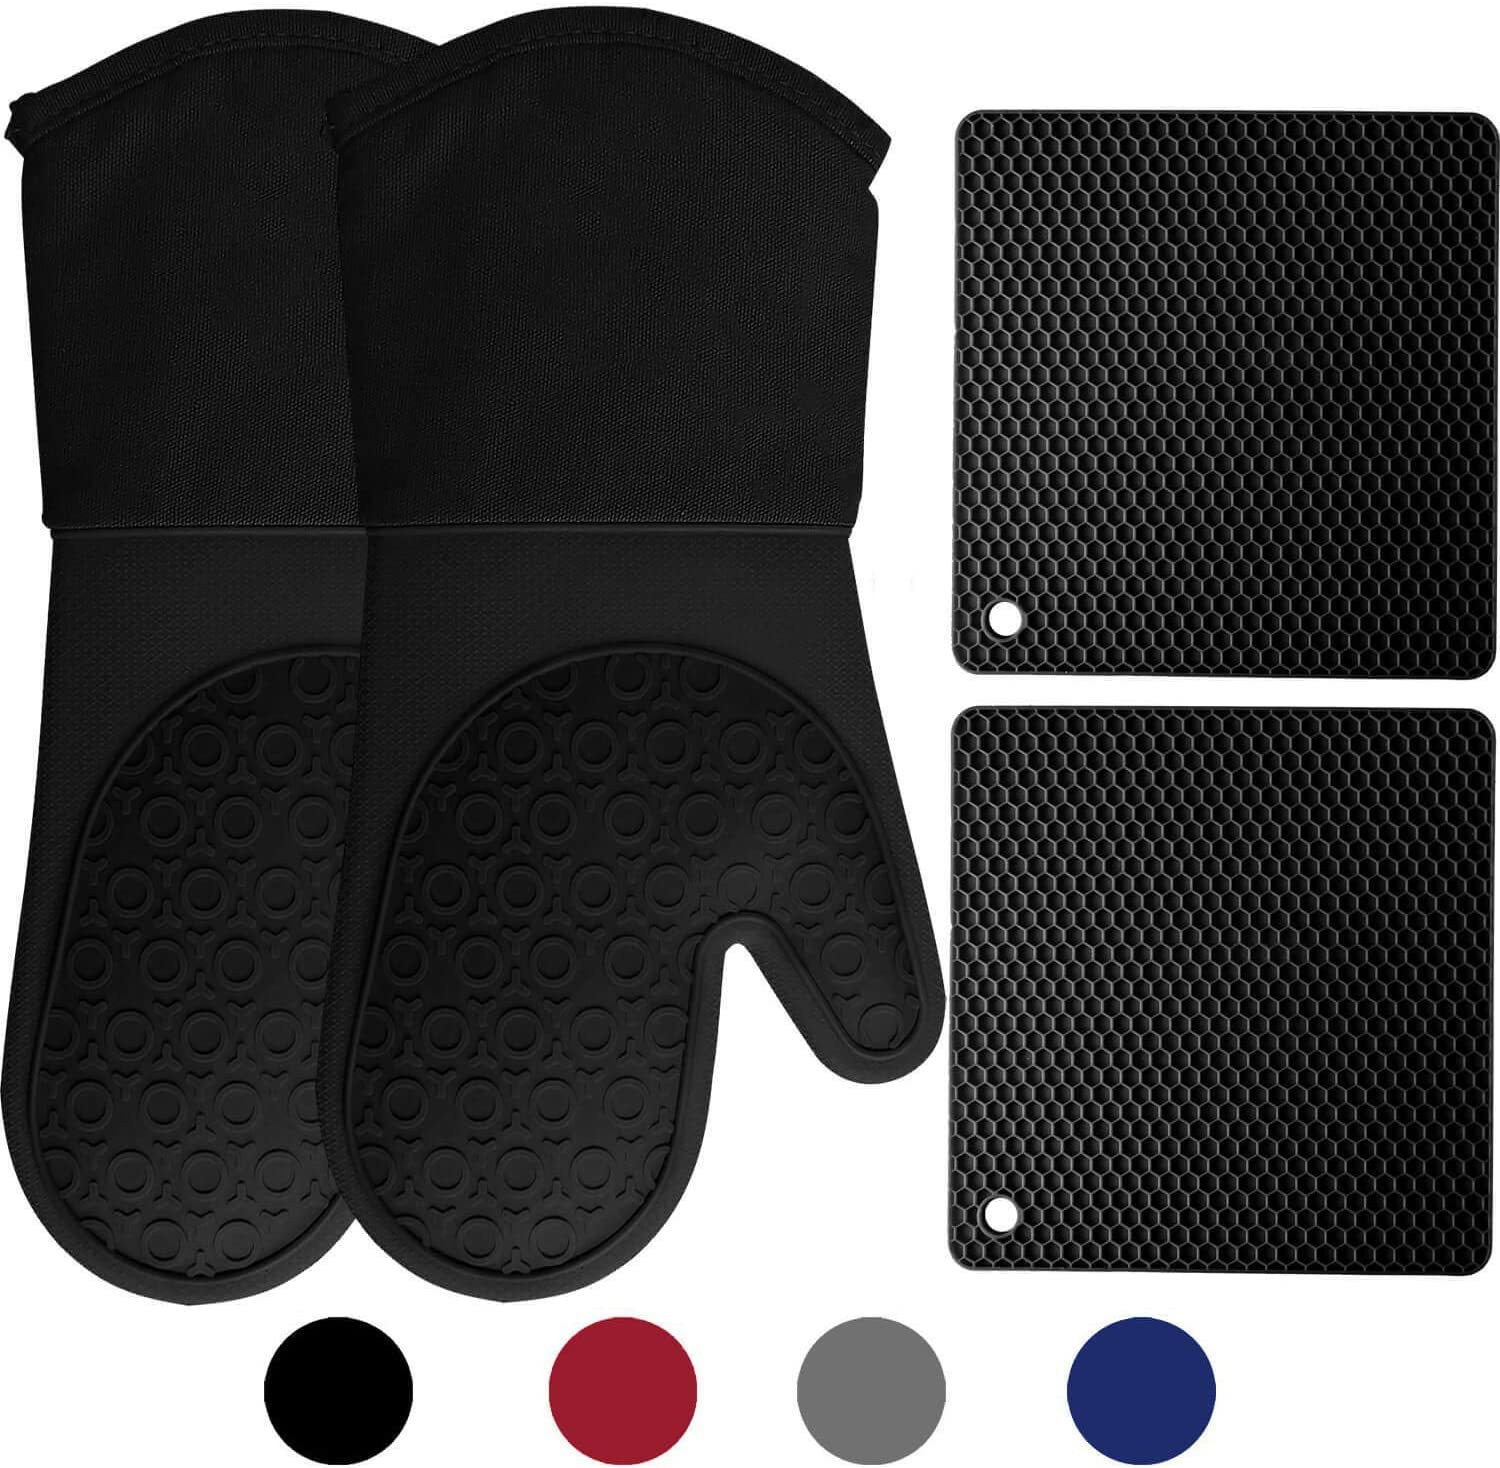 HOMWE Silicone Oven Mitts and Pot Holders, 4-Piece Set, Heavy Duty Cooking Gloves, Kitchen Counter Safe Trivet Mats, Advanced Heat Resistance, Non-Slip Textured Grip, Black: Home & Kitchen